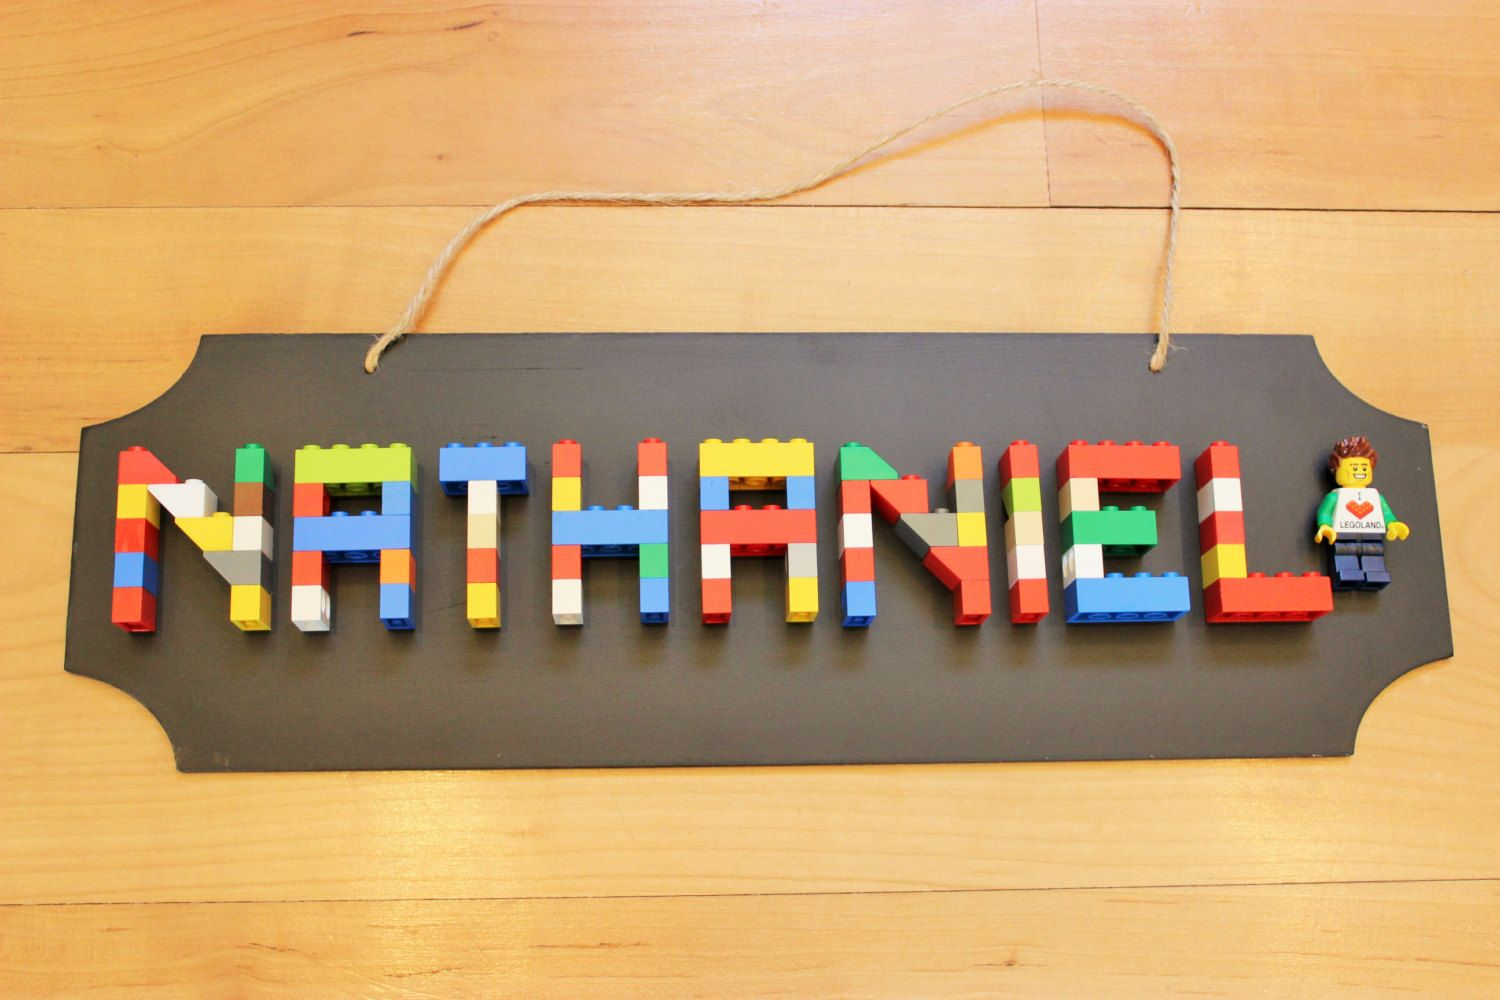 Boys LEGO Name Sign 6 9 Letters   LEGO PARTY   Pinterest   Lego     LEGO Name Sign 7 9 Letters with Minifigure by SignsSignsOneOfAKind on Etsy